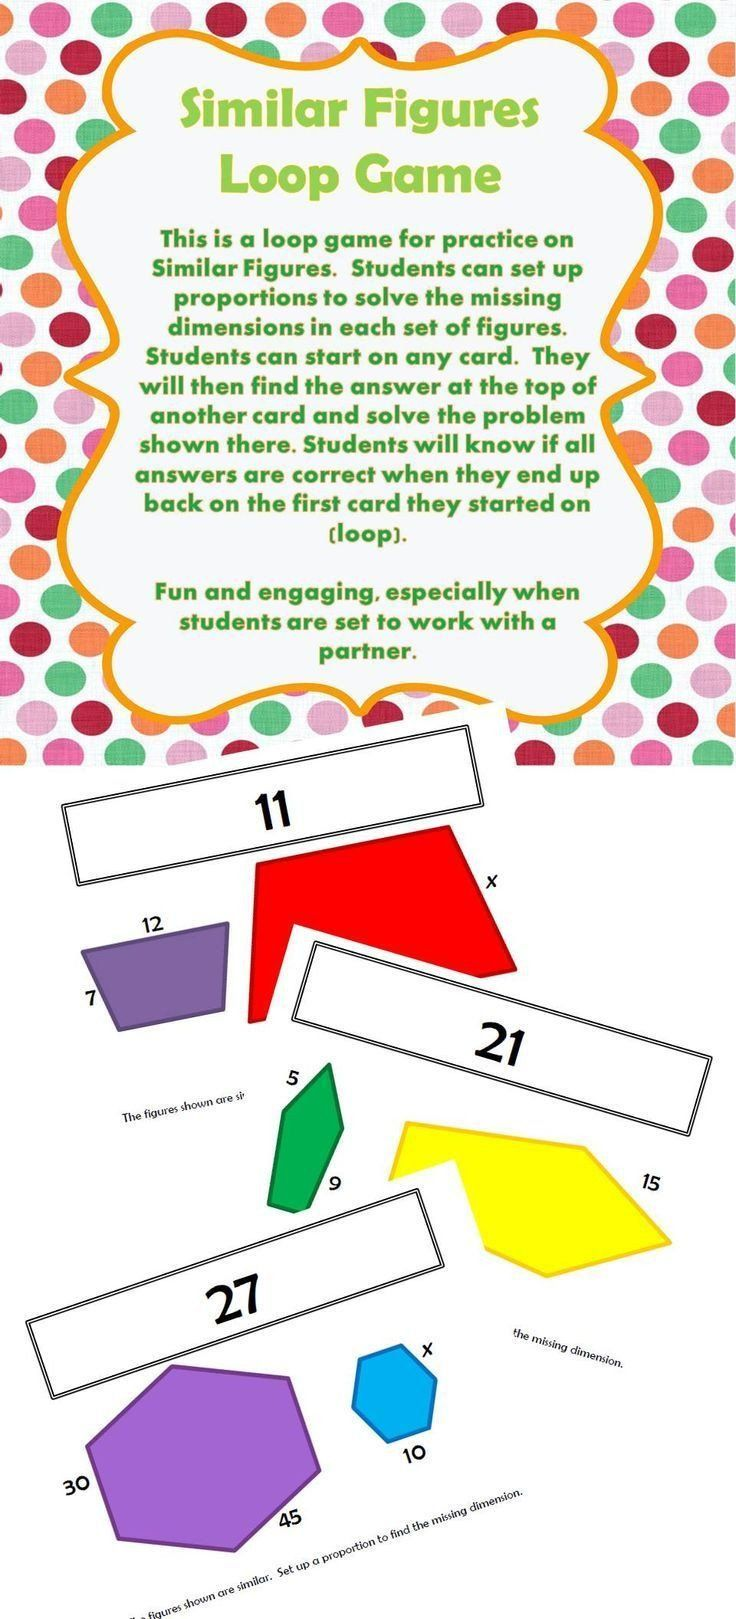 Similar Figures Worksheet Answer Key Similar Figures Loop Game With Missing D Elementary School Math Activities Elementary Measurement Activities Math Stations